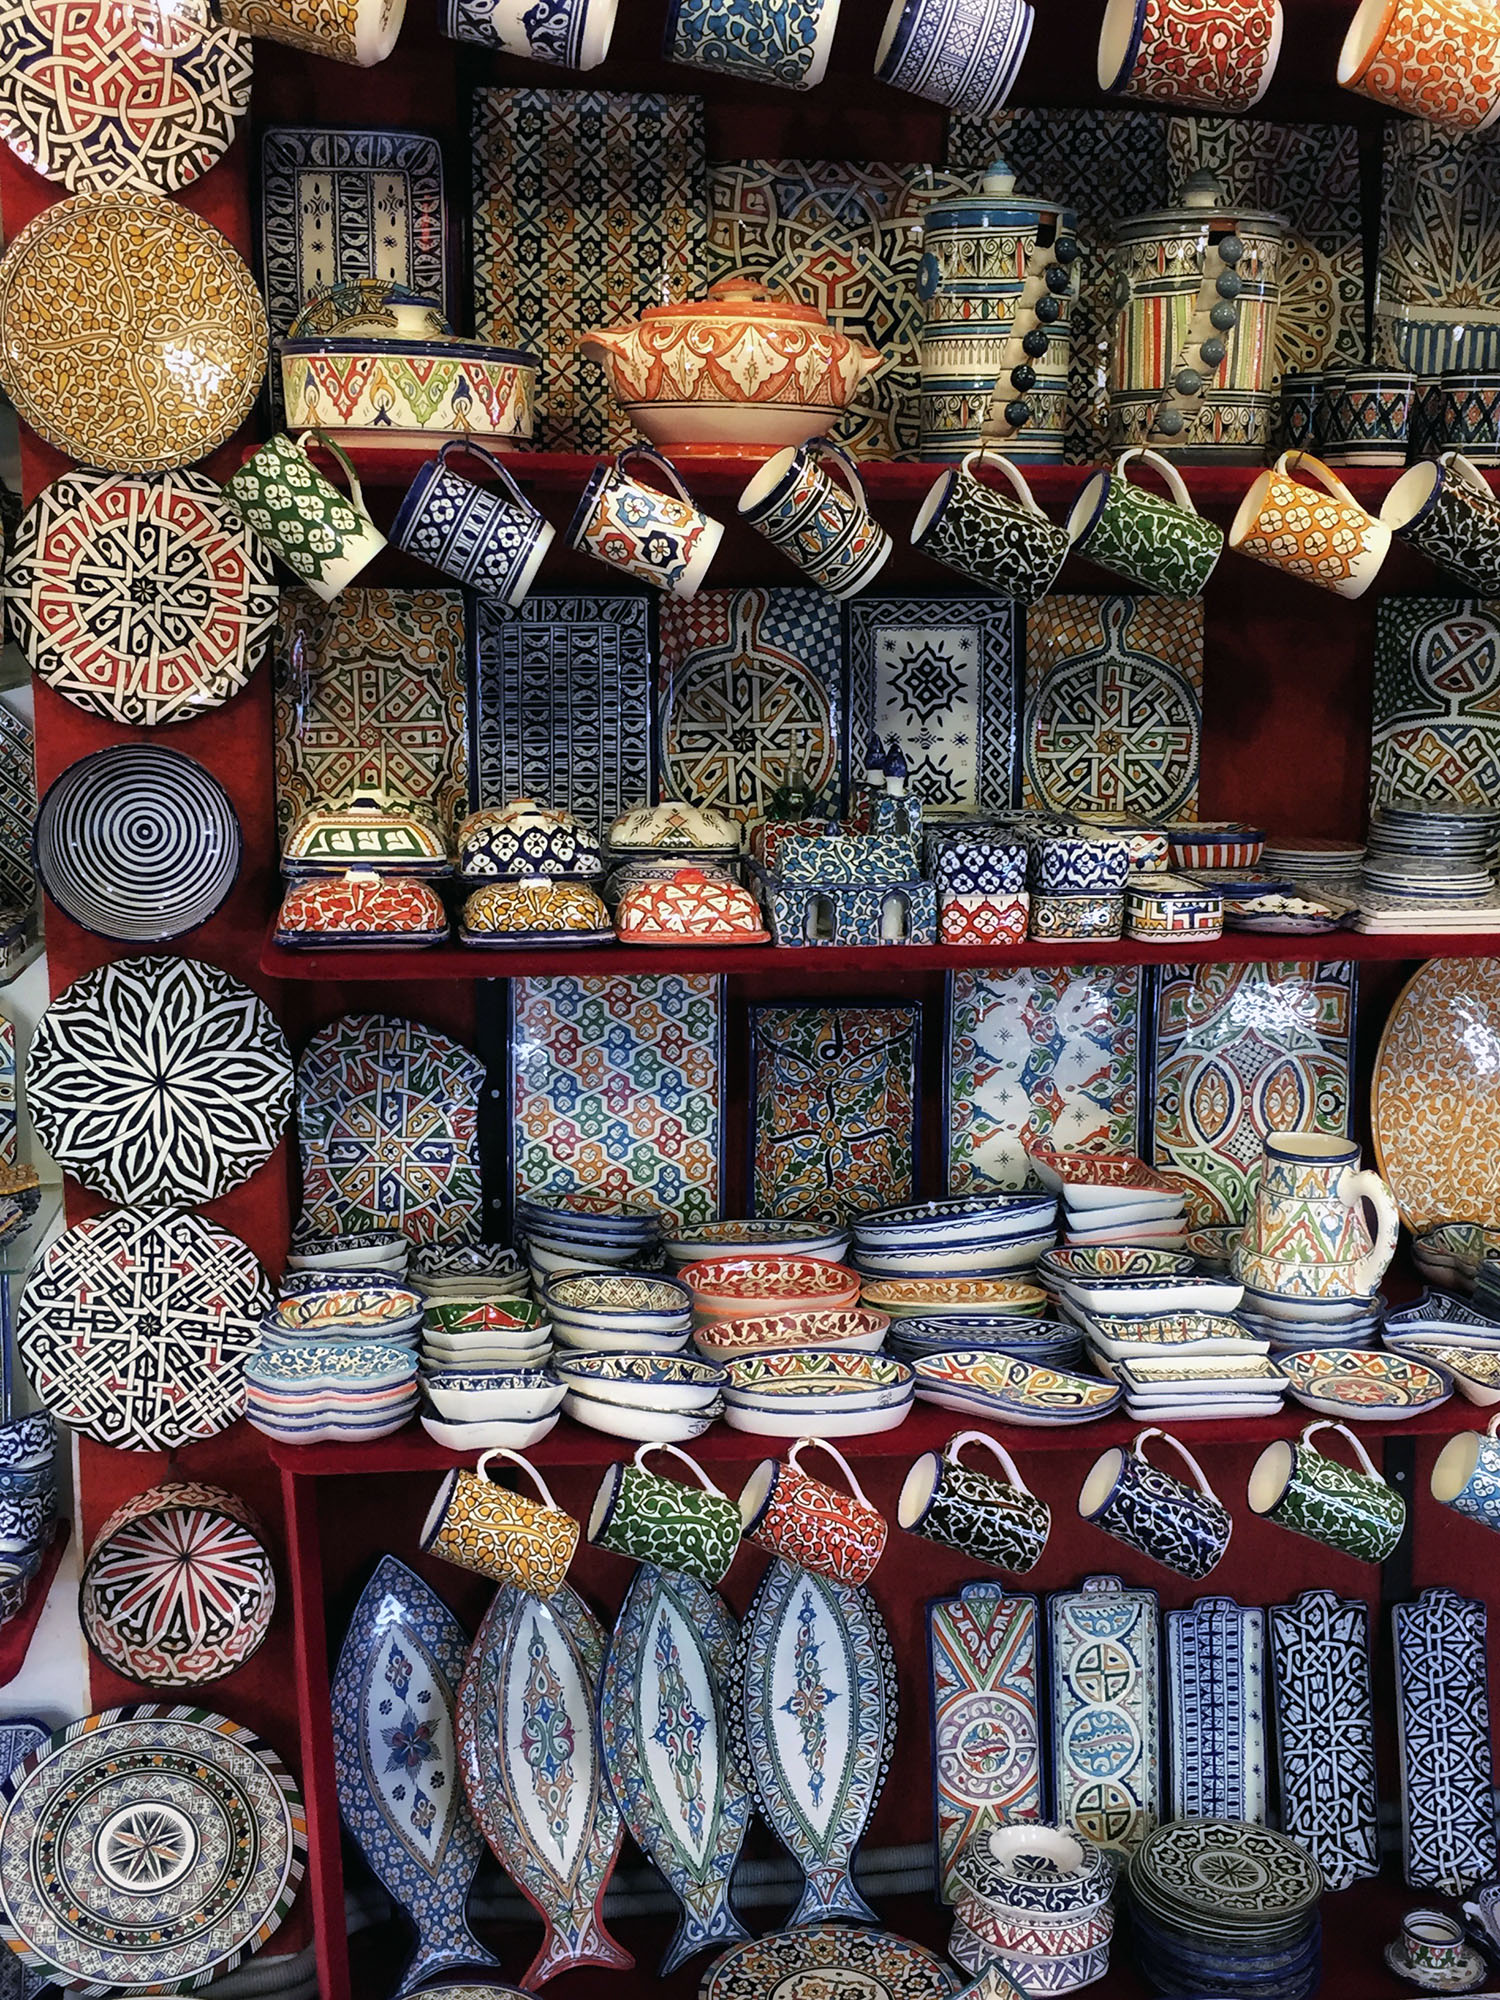 Pottery in a souk in rabat Morocco